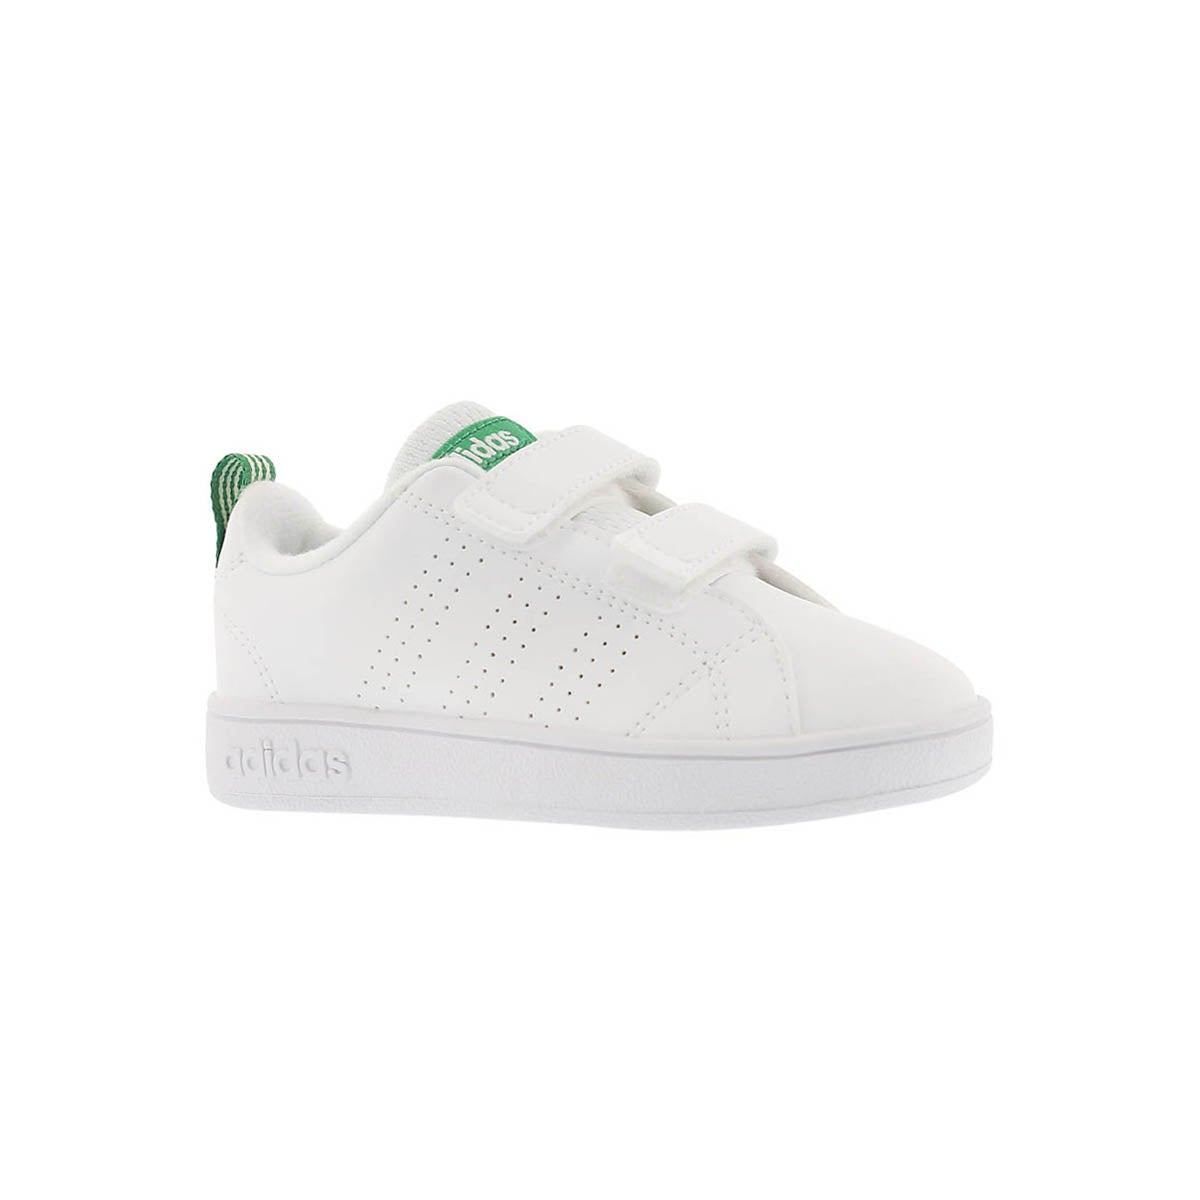 Infants' ADVANTAGE CLEAN CMF white/green sneakers